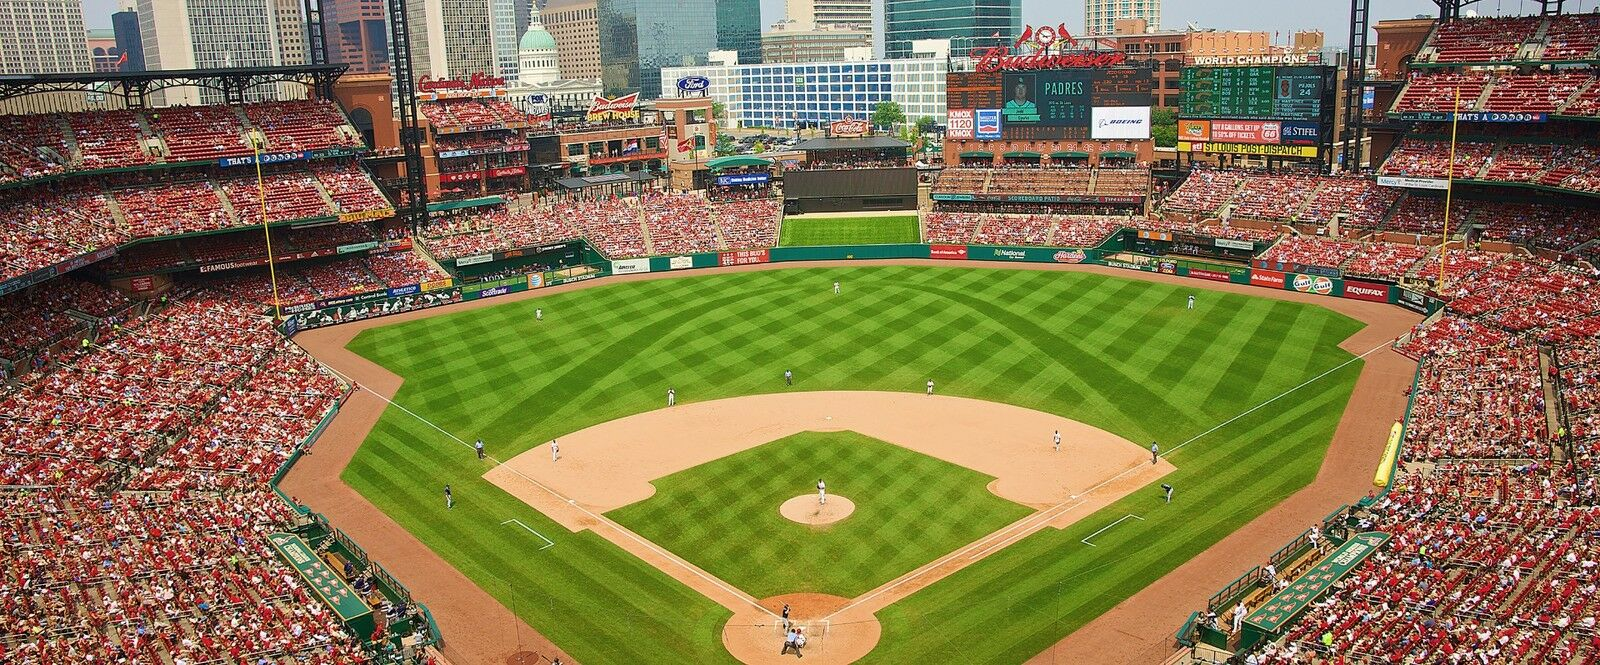 Colorado Rockies at St. Louis Cardinals